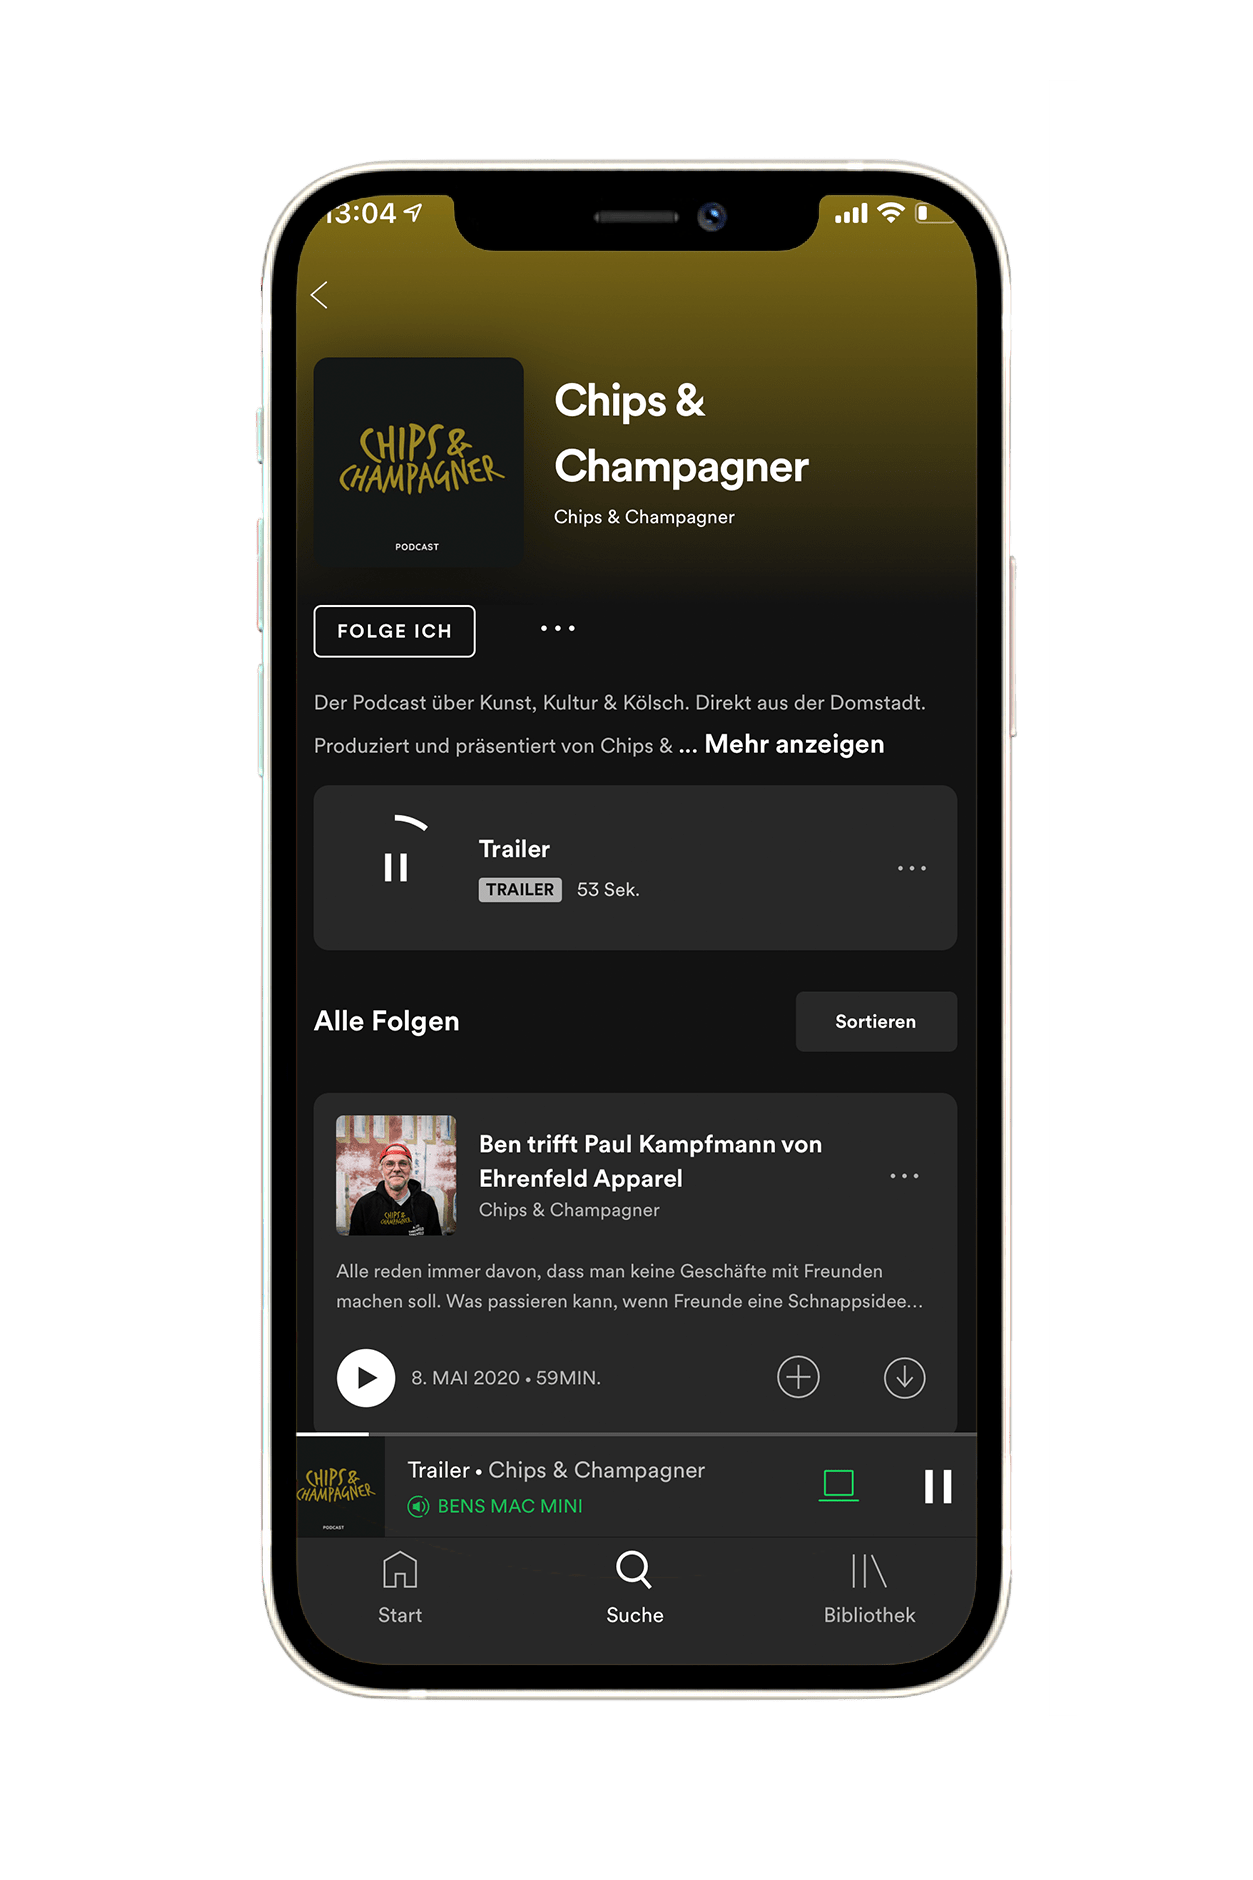 Chips & Champagner Podcast auf Spotify